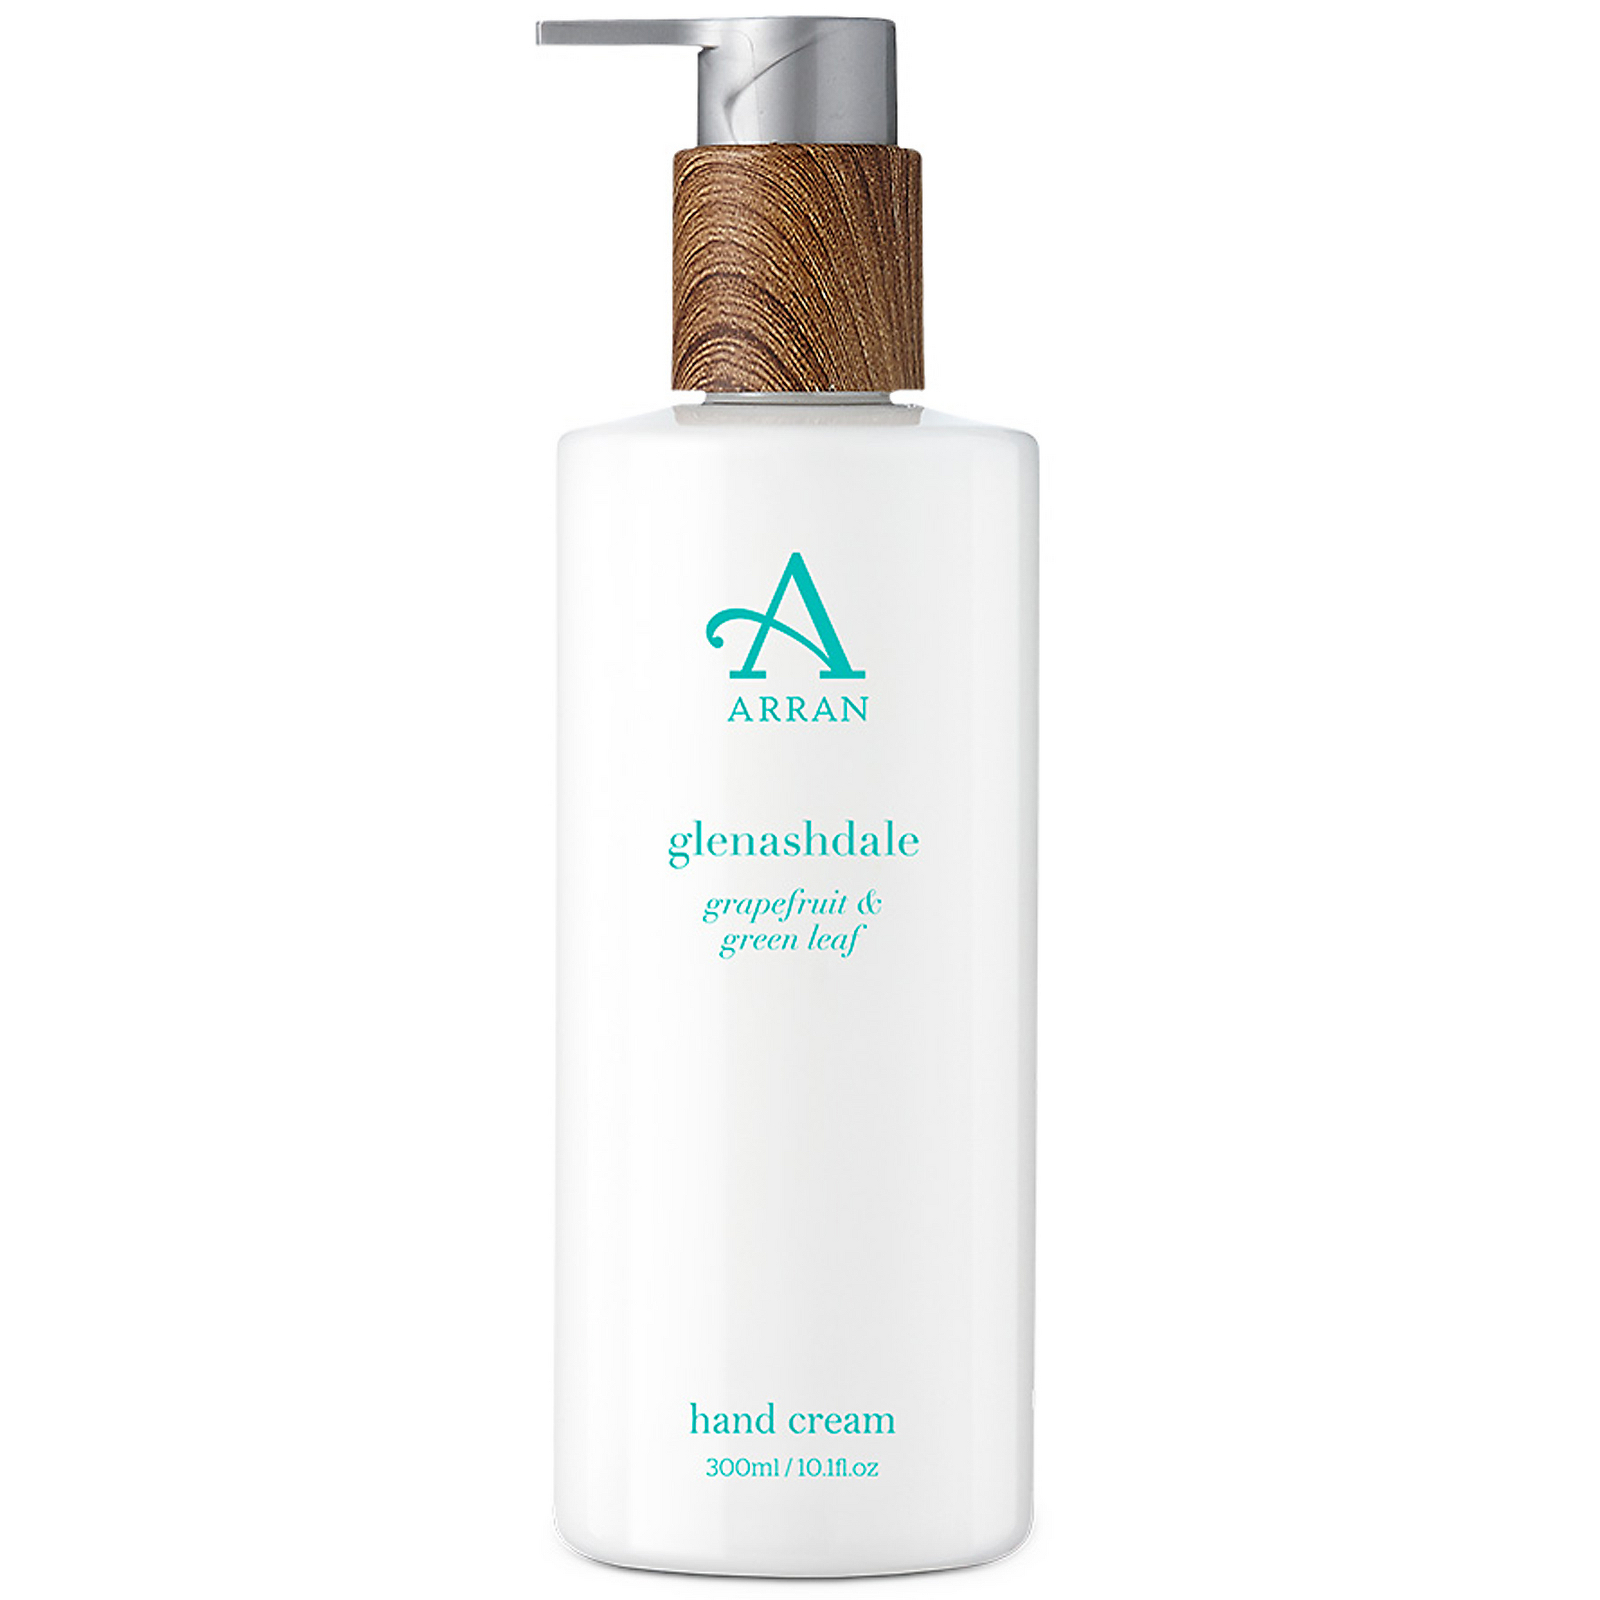 ARRAN Sense of Scotland Glenashdale - Grapefruit & Green Leaf Hand Cream 300ml